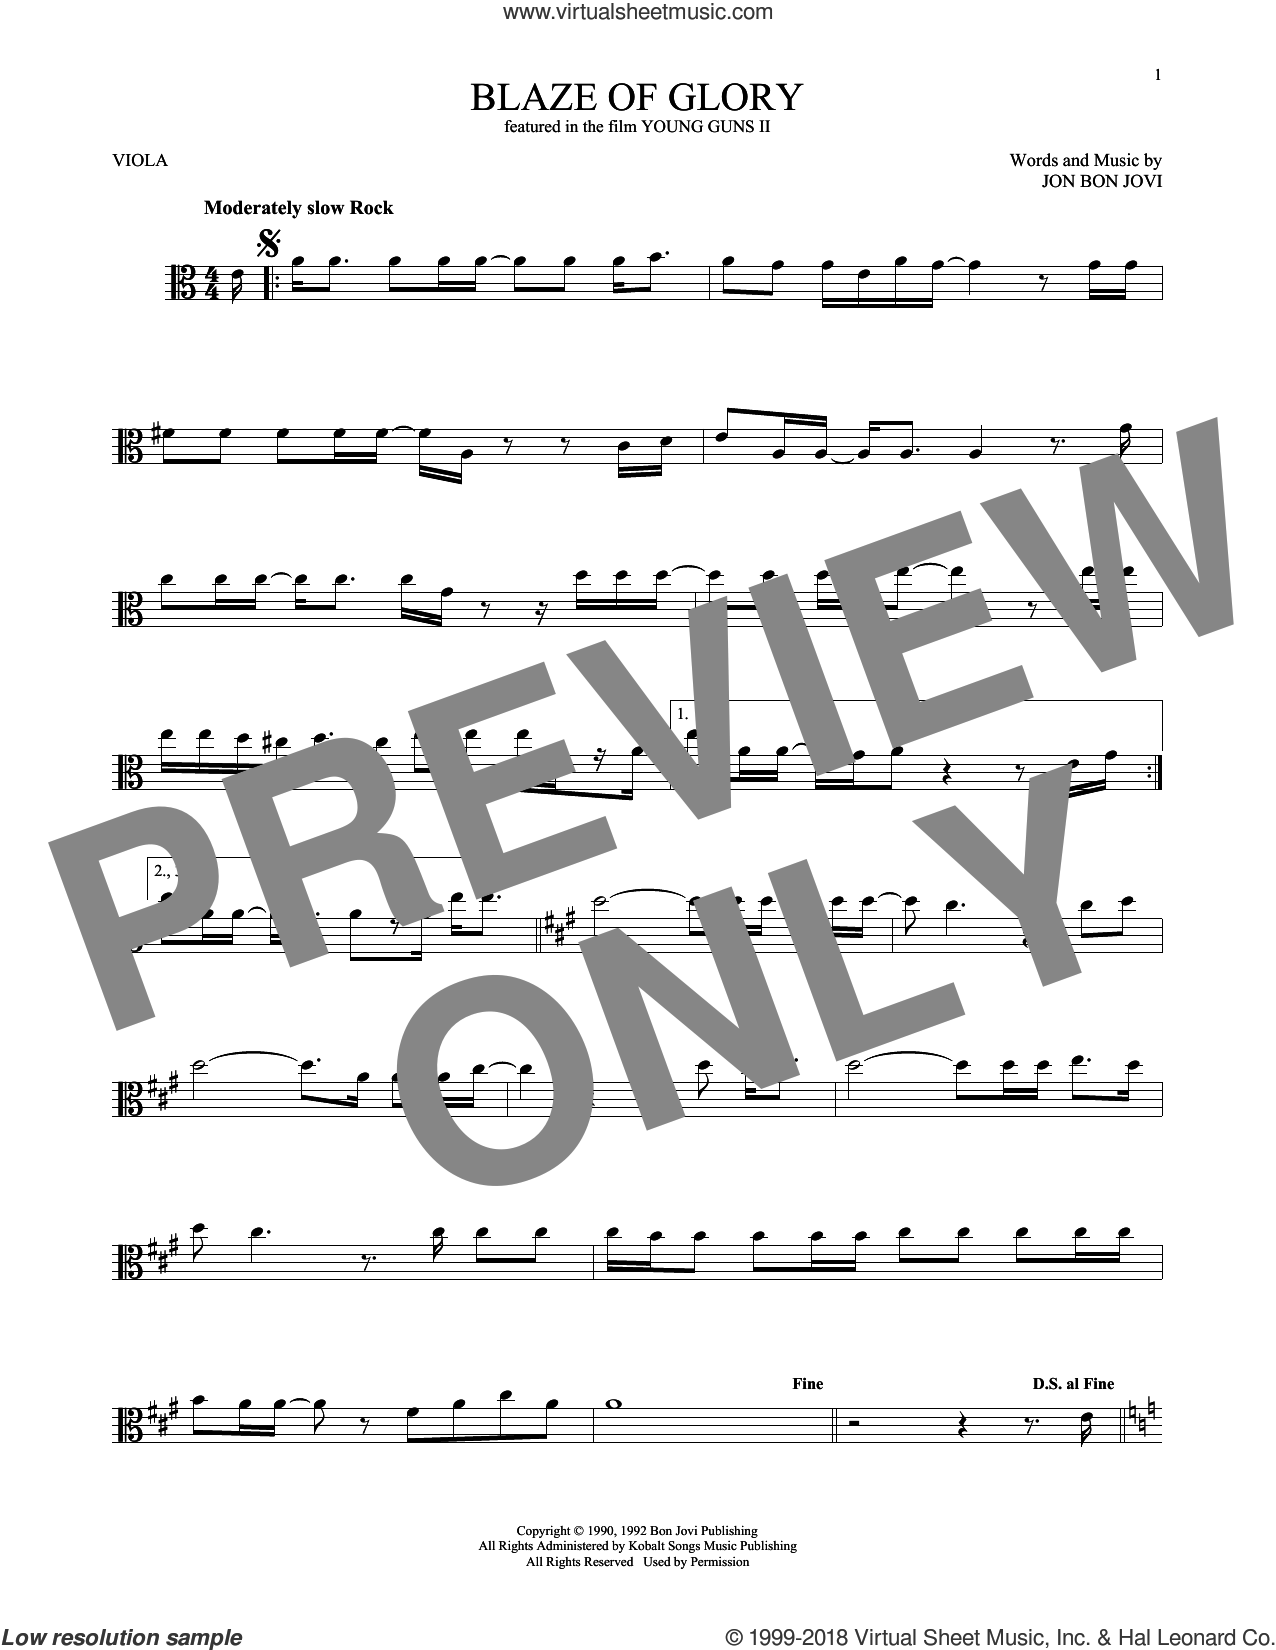 Blaze Of Glory sheet music for viola solo by Bon Jovi, intermediate skill level